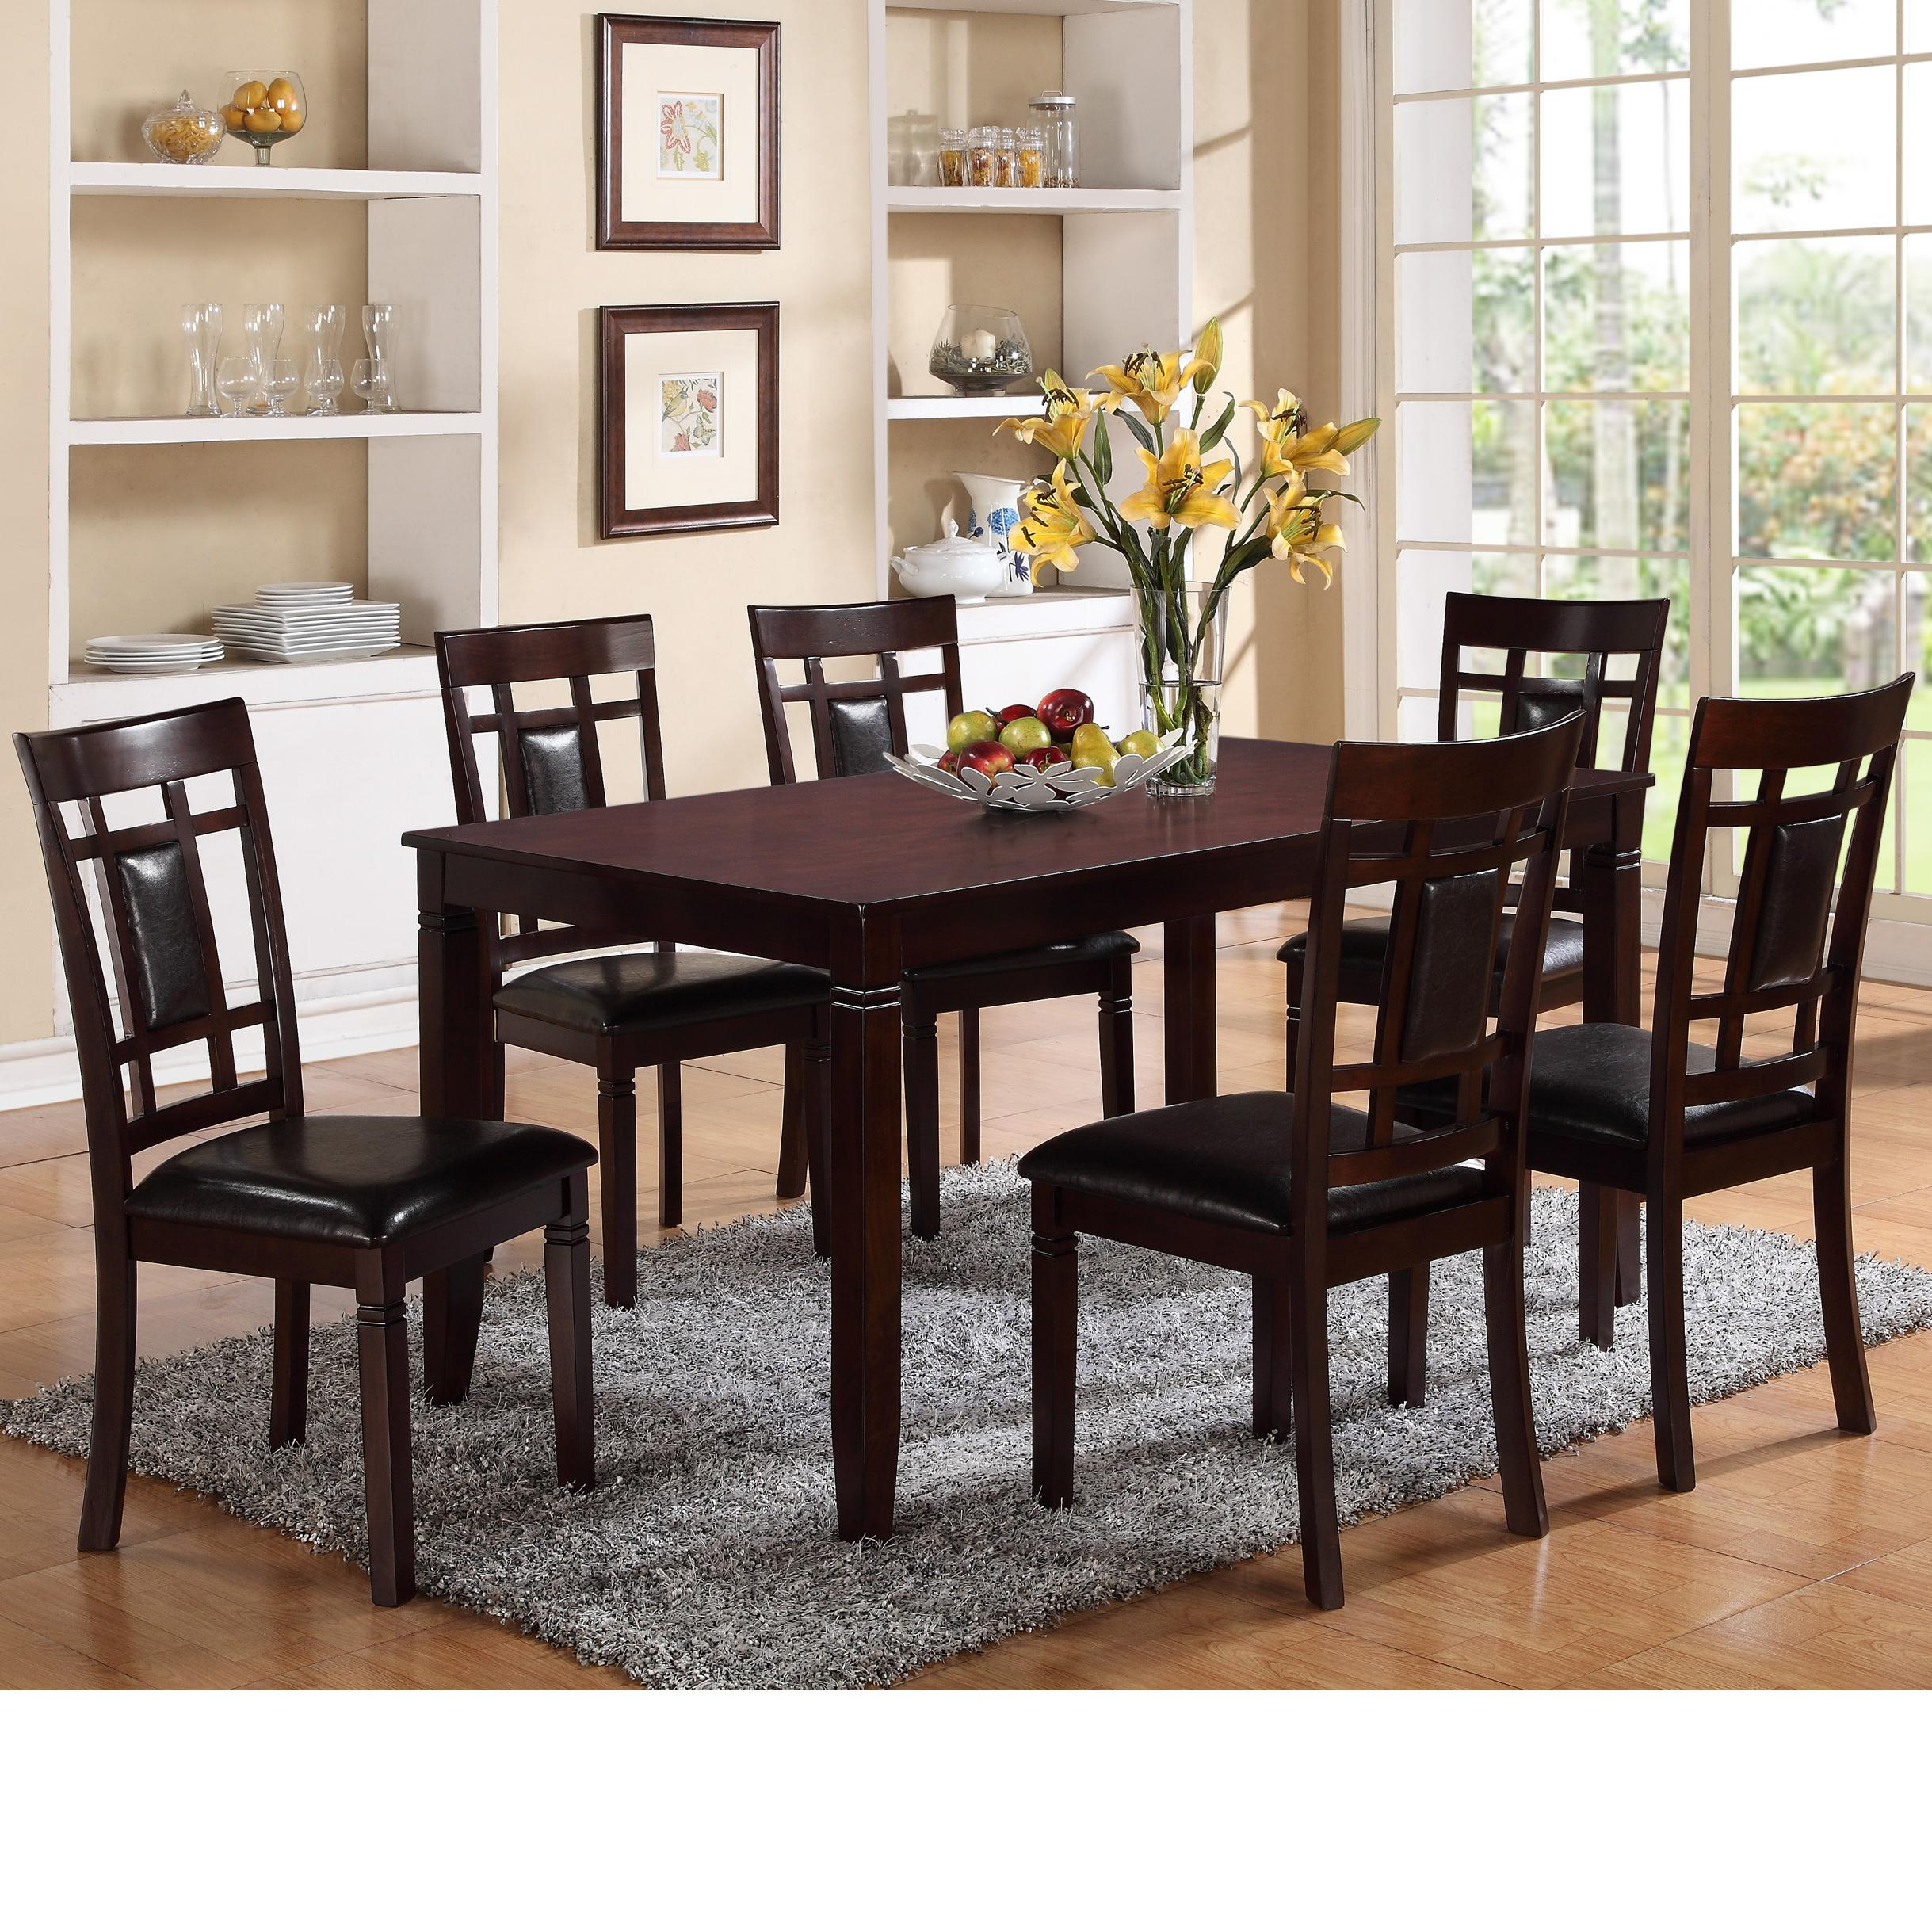 Crown Mark Paige 7 Piece Table and Chair Set - Item Number 2325SET & Crown Mark Paige 7 Piece Table and Chair Set with Block Feets ...